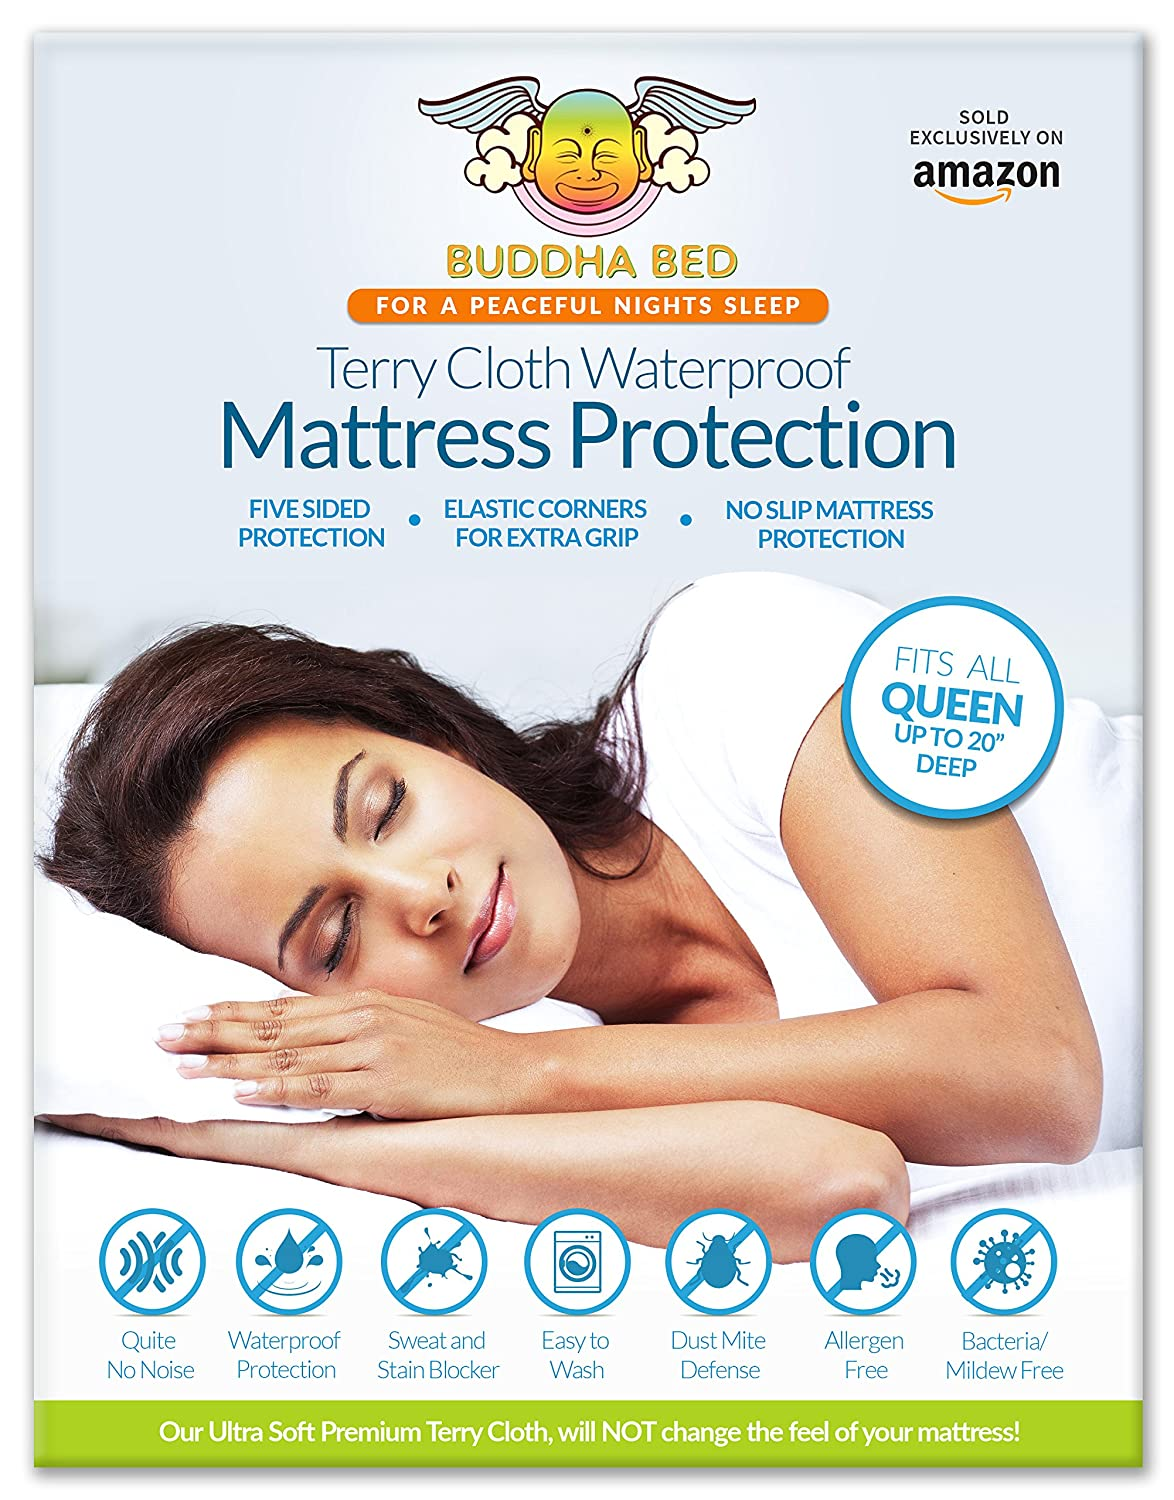 LionFinch Queen Mattress Encasement. 100% Waterpoof Designed to Block Sweat, Stains, Urine, and Accidents. Bleachable, Easy to Wash. Installs Like a Fitted Sheet and fits up to 20 Inches Deep.